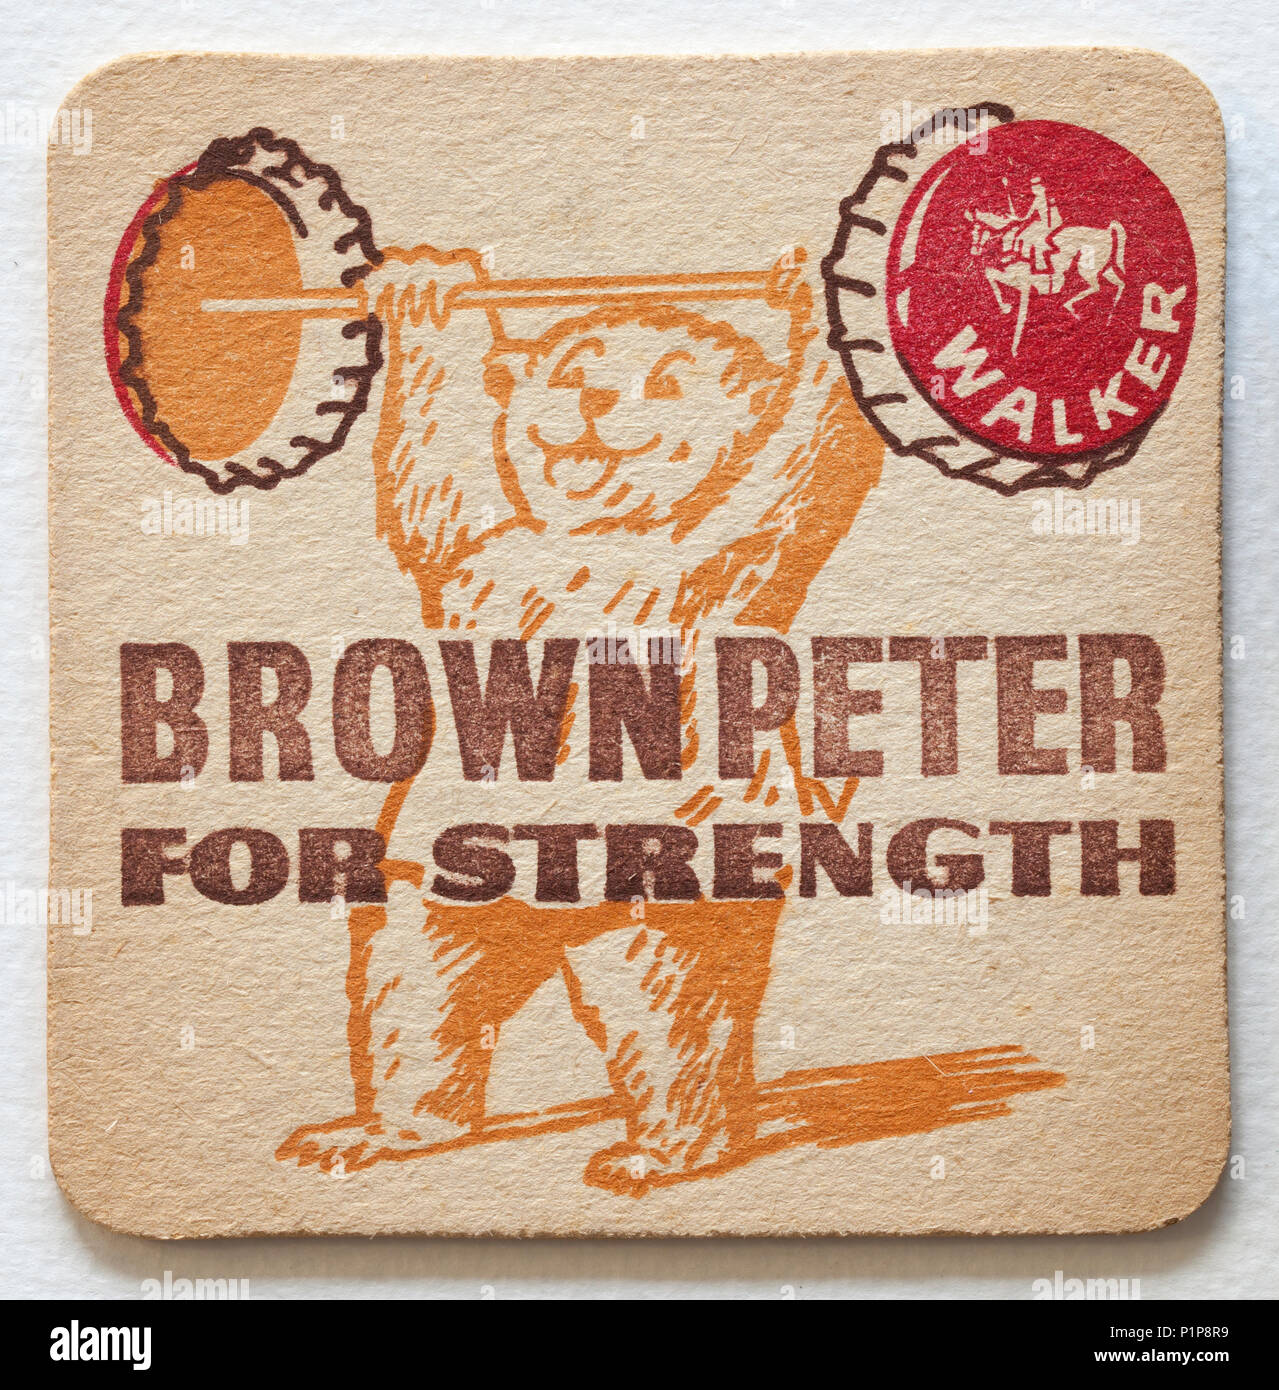 Vintage British Beer Mat Advertising Stock Photo